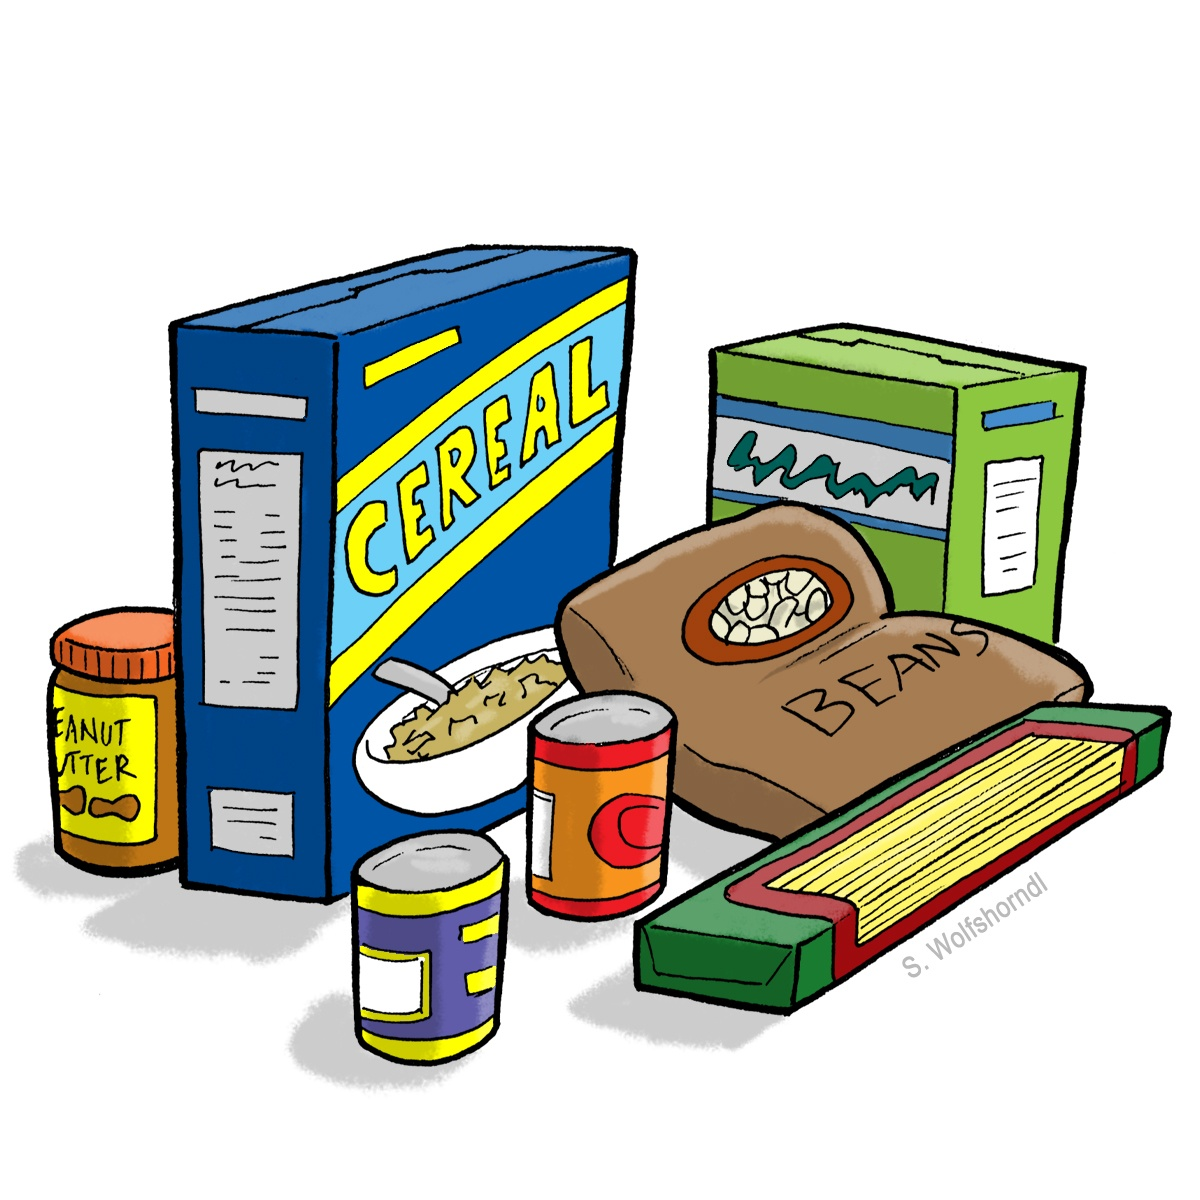 83 Images Of Food Pantry Clipart   You Can Use These Free Cliparts For